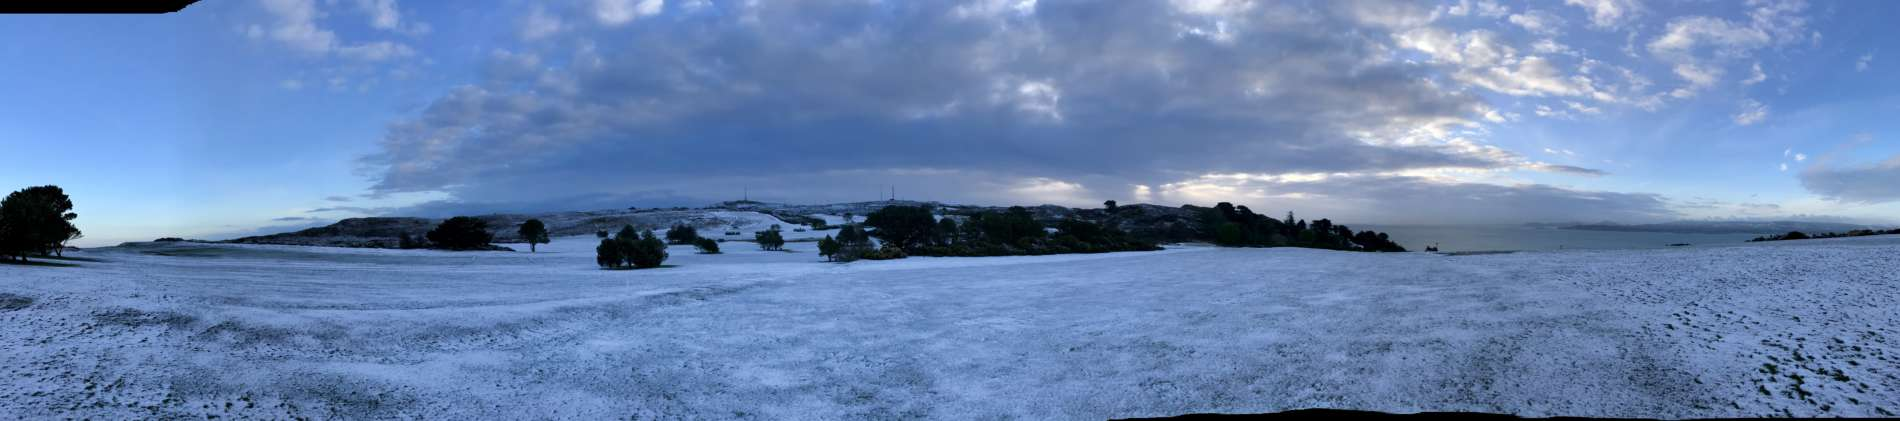 Snow at Howth Golf Club Dublin